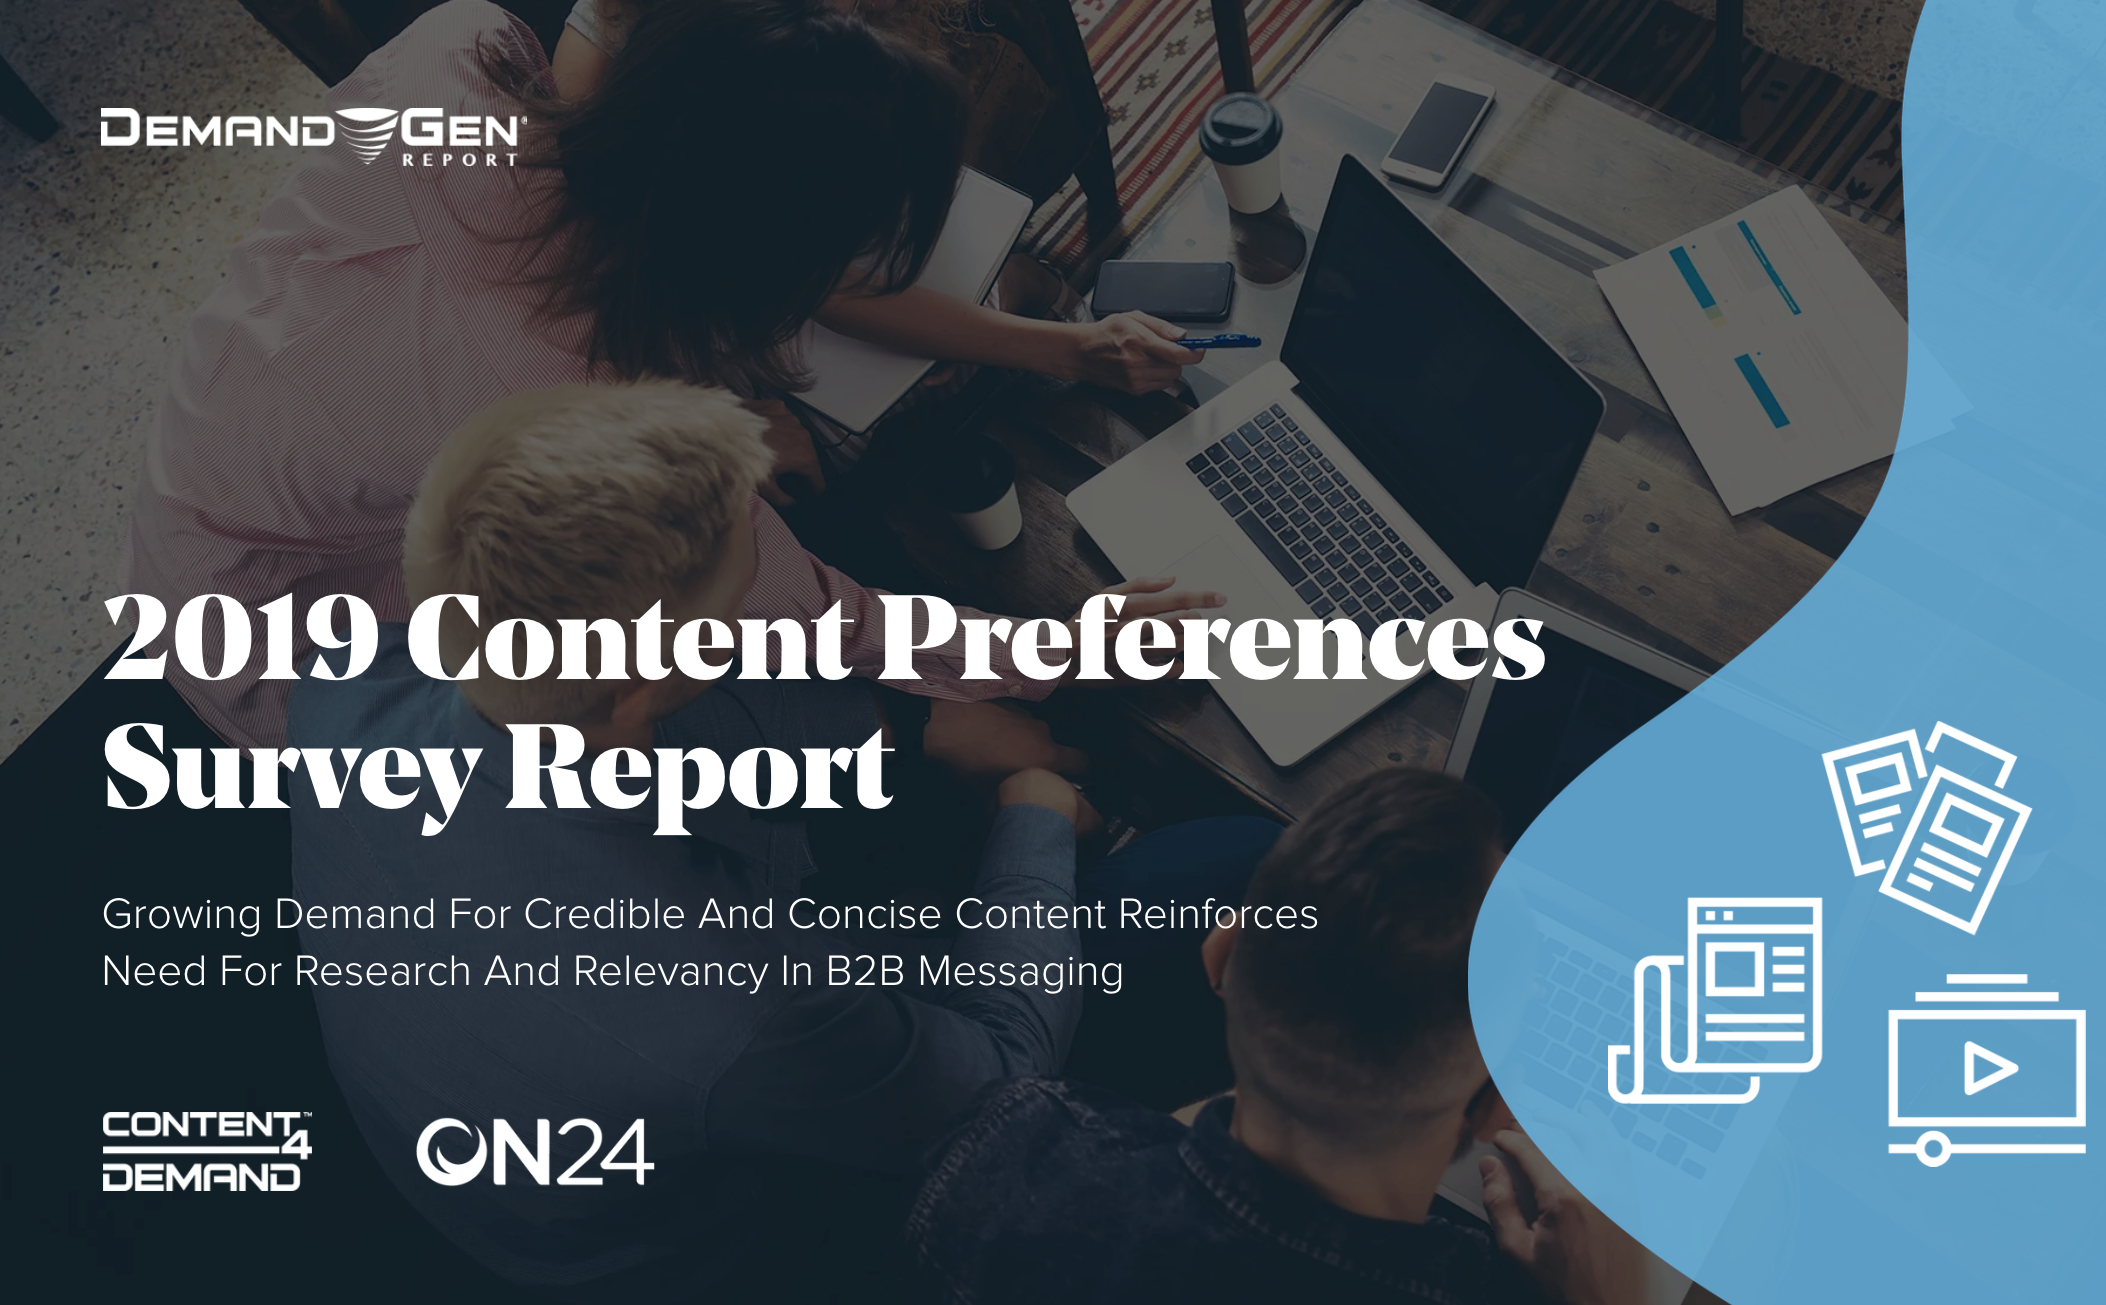 2019 Content Preferences Survey: Buyers Place More Value On Peer Reviews, Third Party Reports